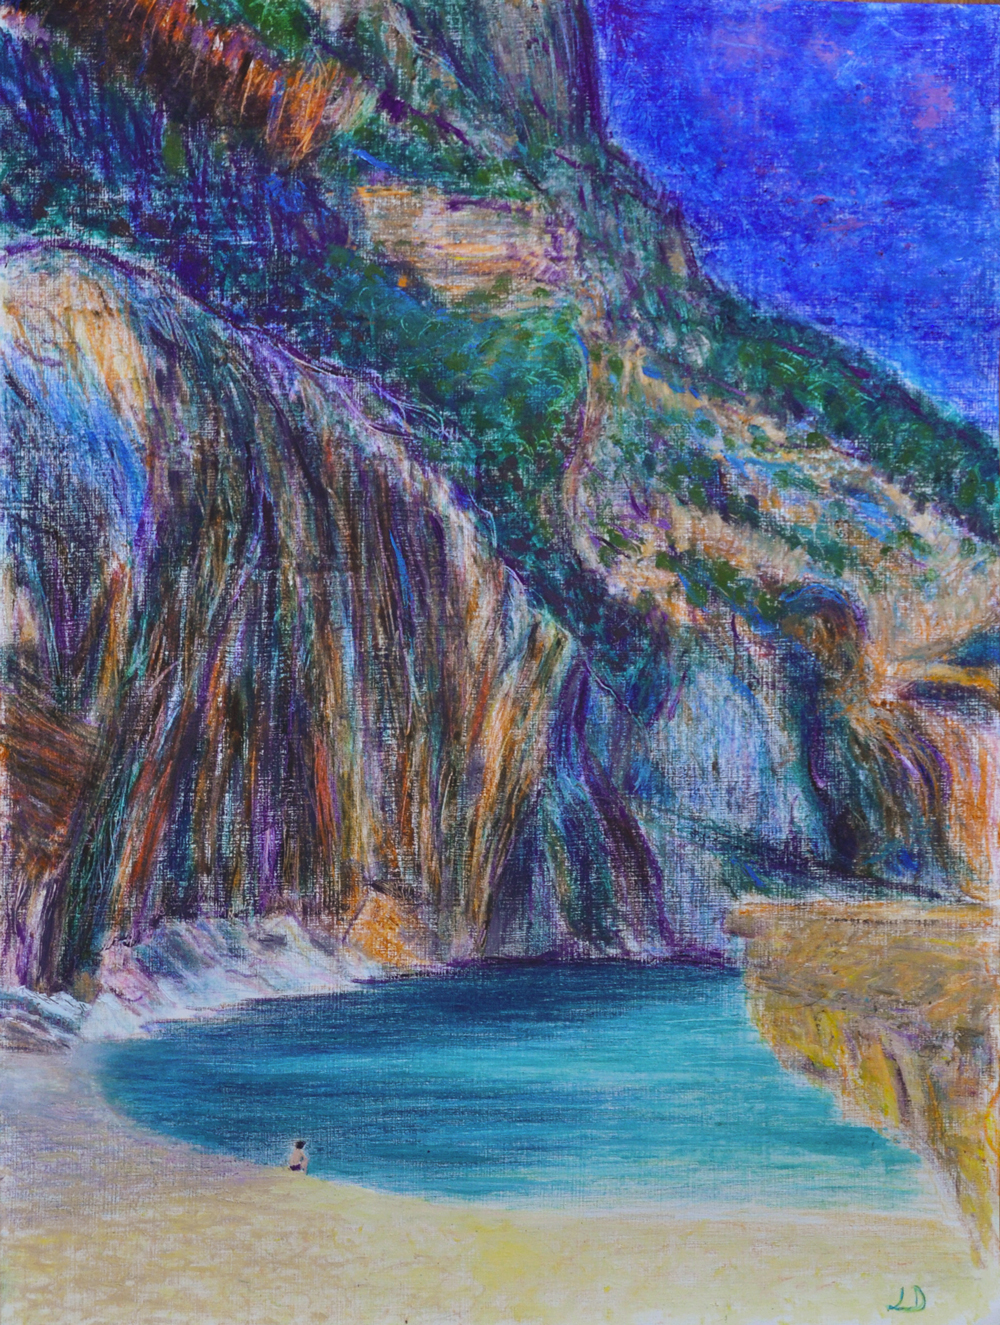 Cala Mariolu no.3, Sardaigne. Mixed media sur papier, 56x42, 2017